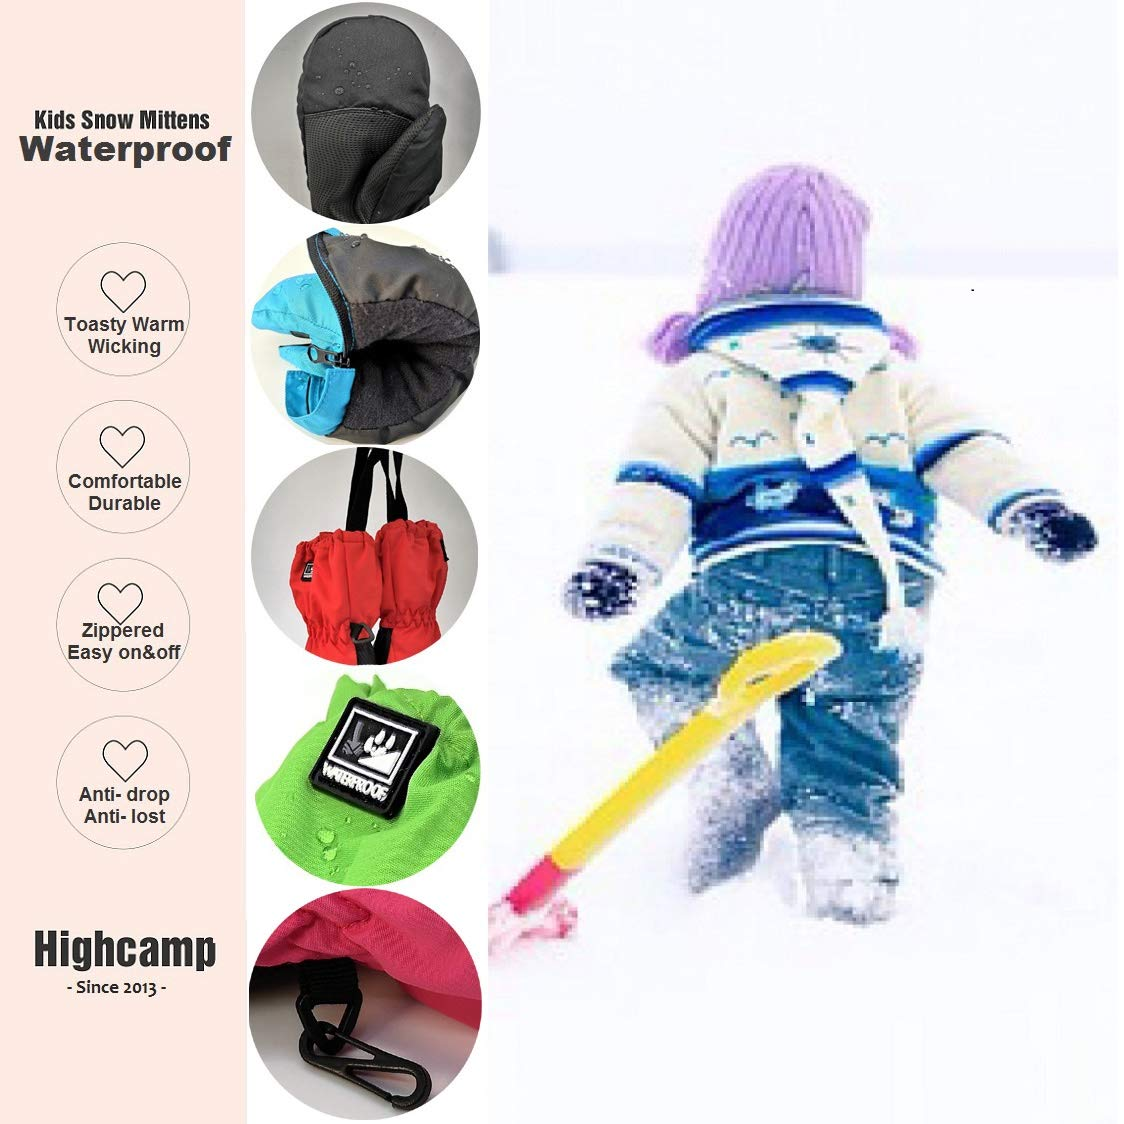 Kids Winter Waterproof Ski Snow Mittens Warm with Zipper for Toddler Boys Girls